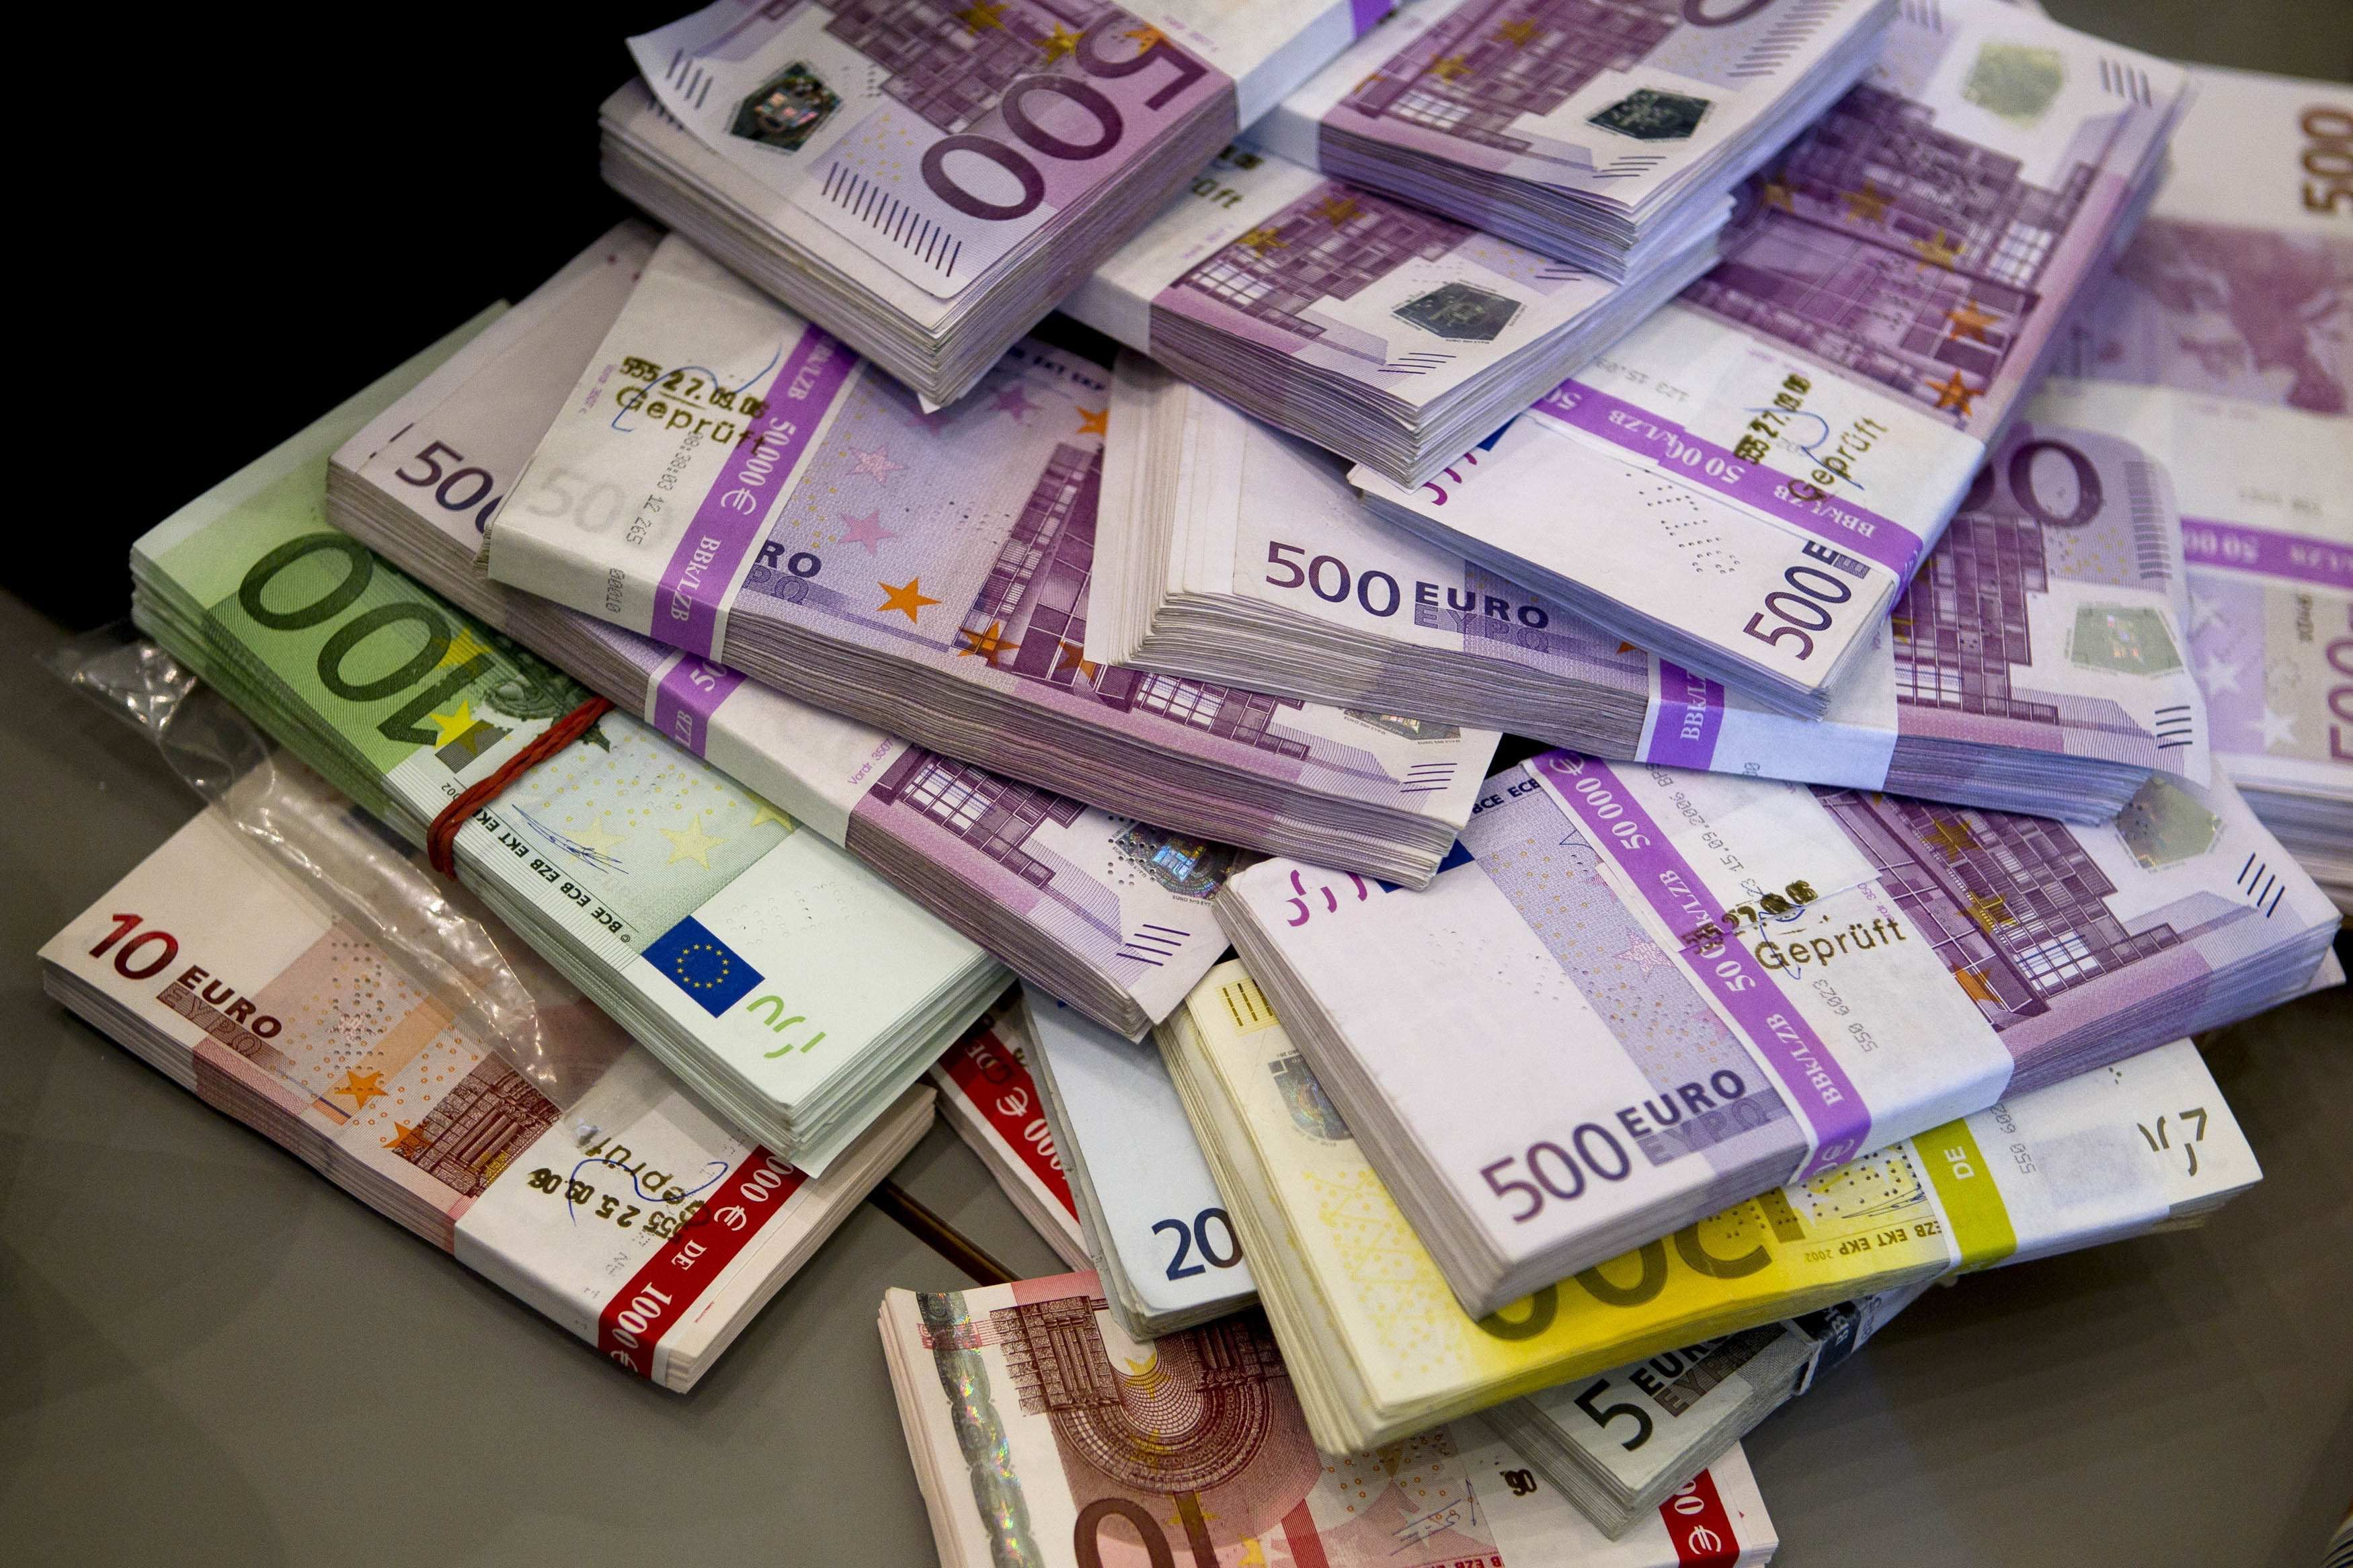 I Am Aware That Always Have More Than Enough Money To Wver Want Rich Euros Love You